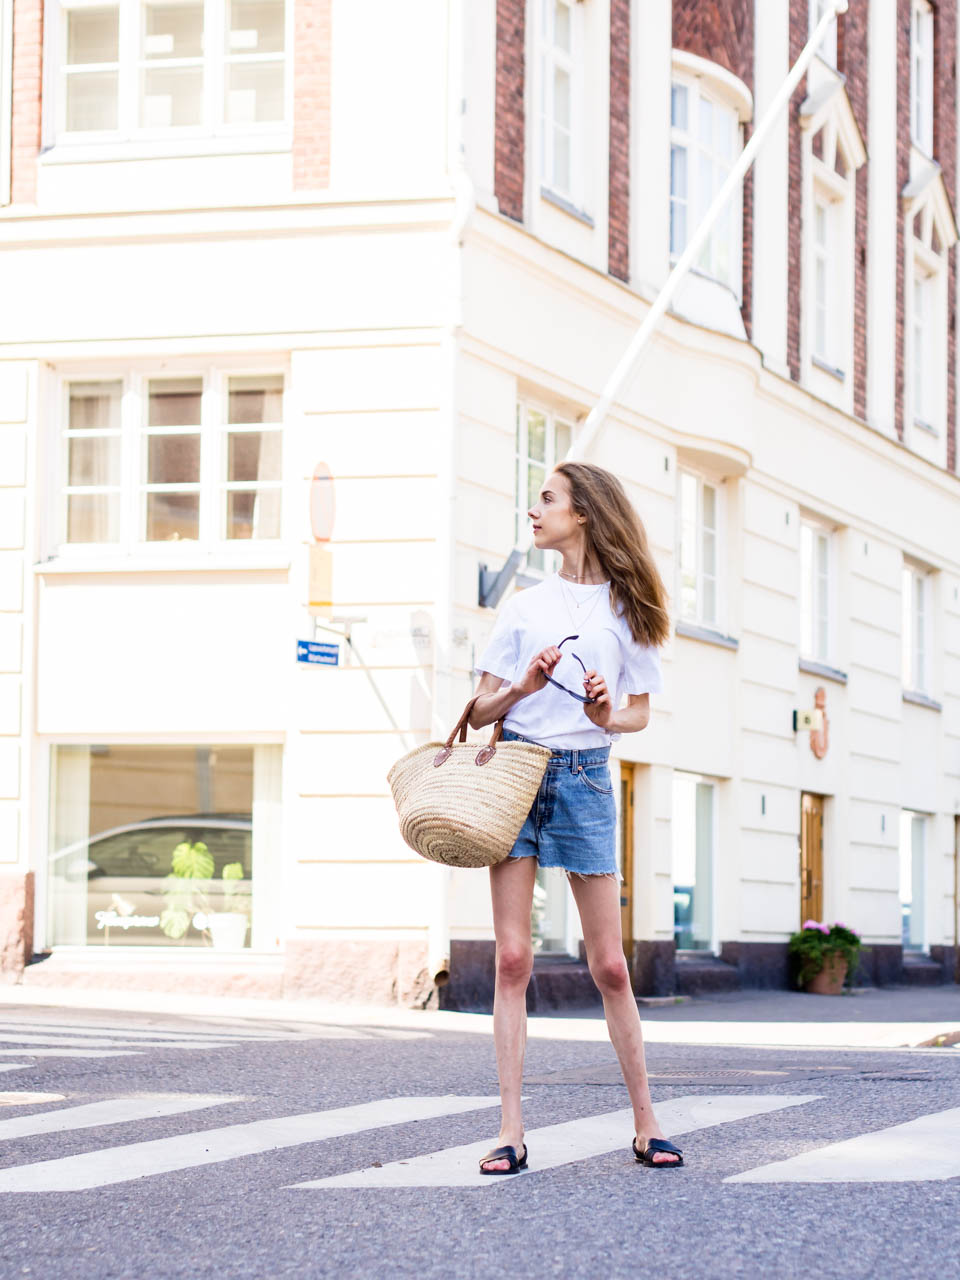 summer-outfit-fashion-blogger-white-tshirt-vintage-levis-denim-shorts